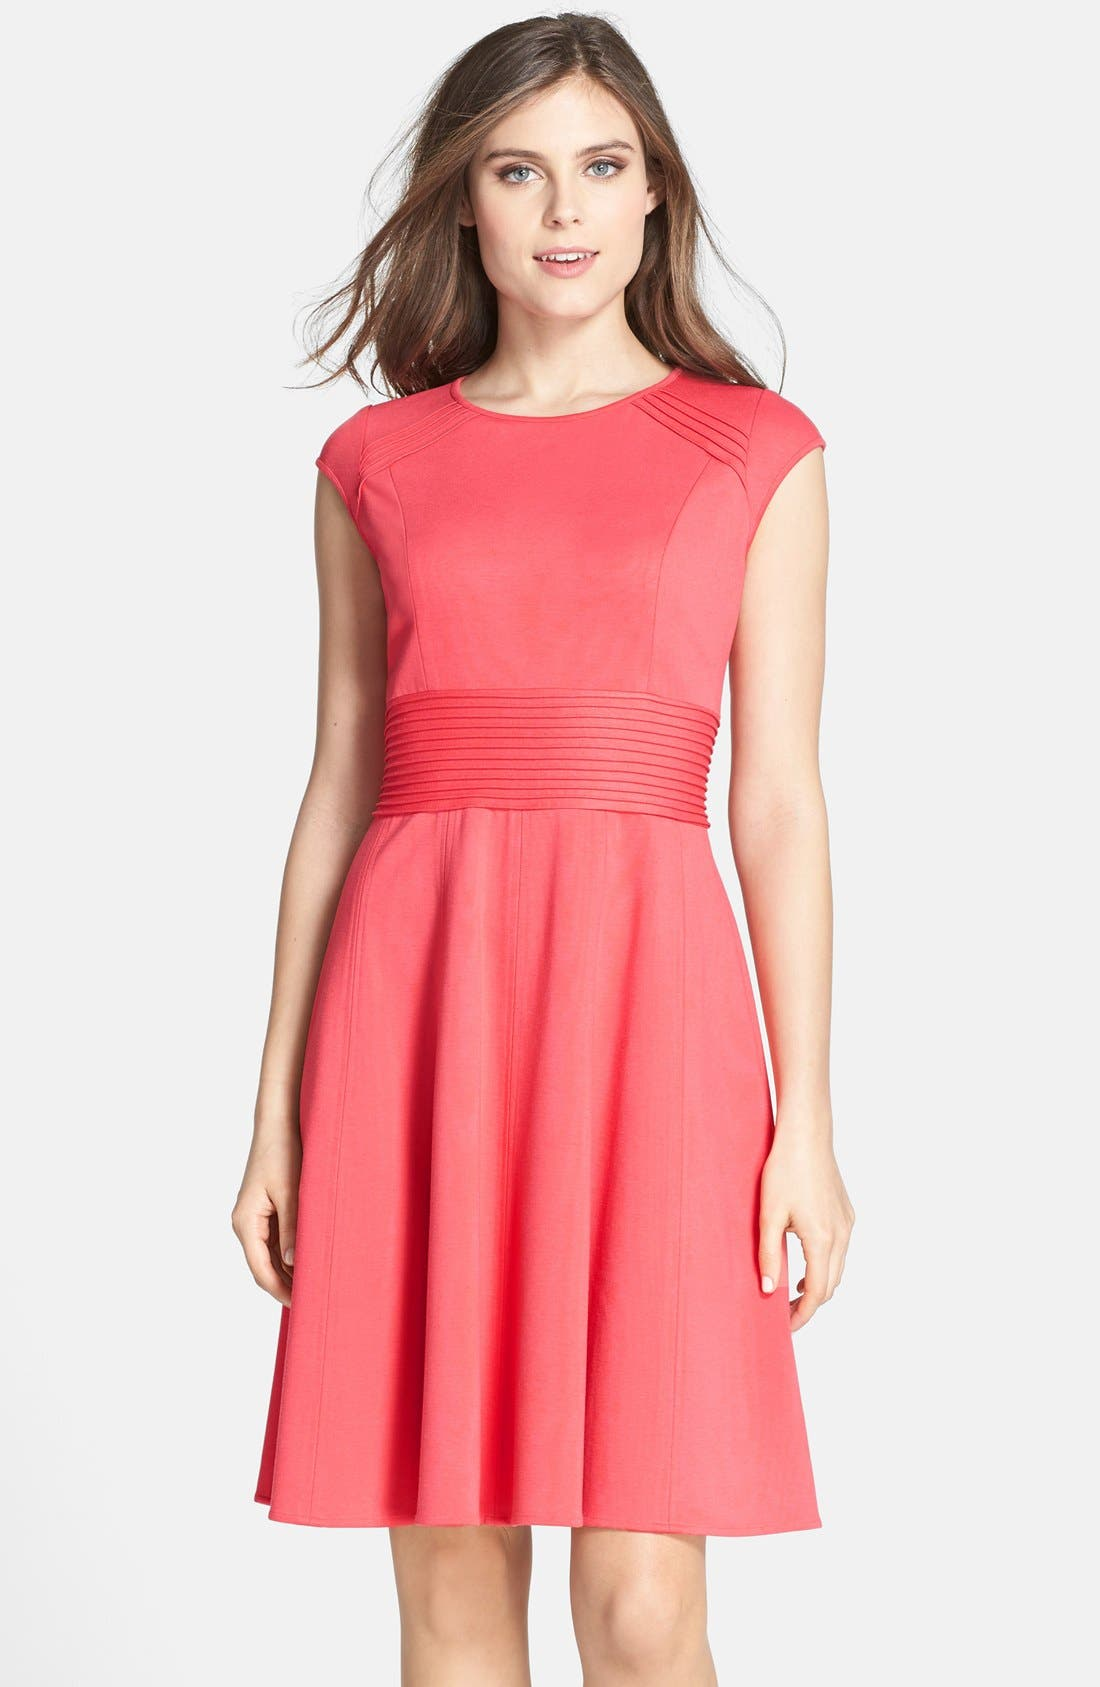 Alternate Image 1 Selected - Eliza J Pintucked Waist Seamed Ponte Knit Fit & Flare Dress